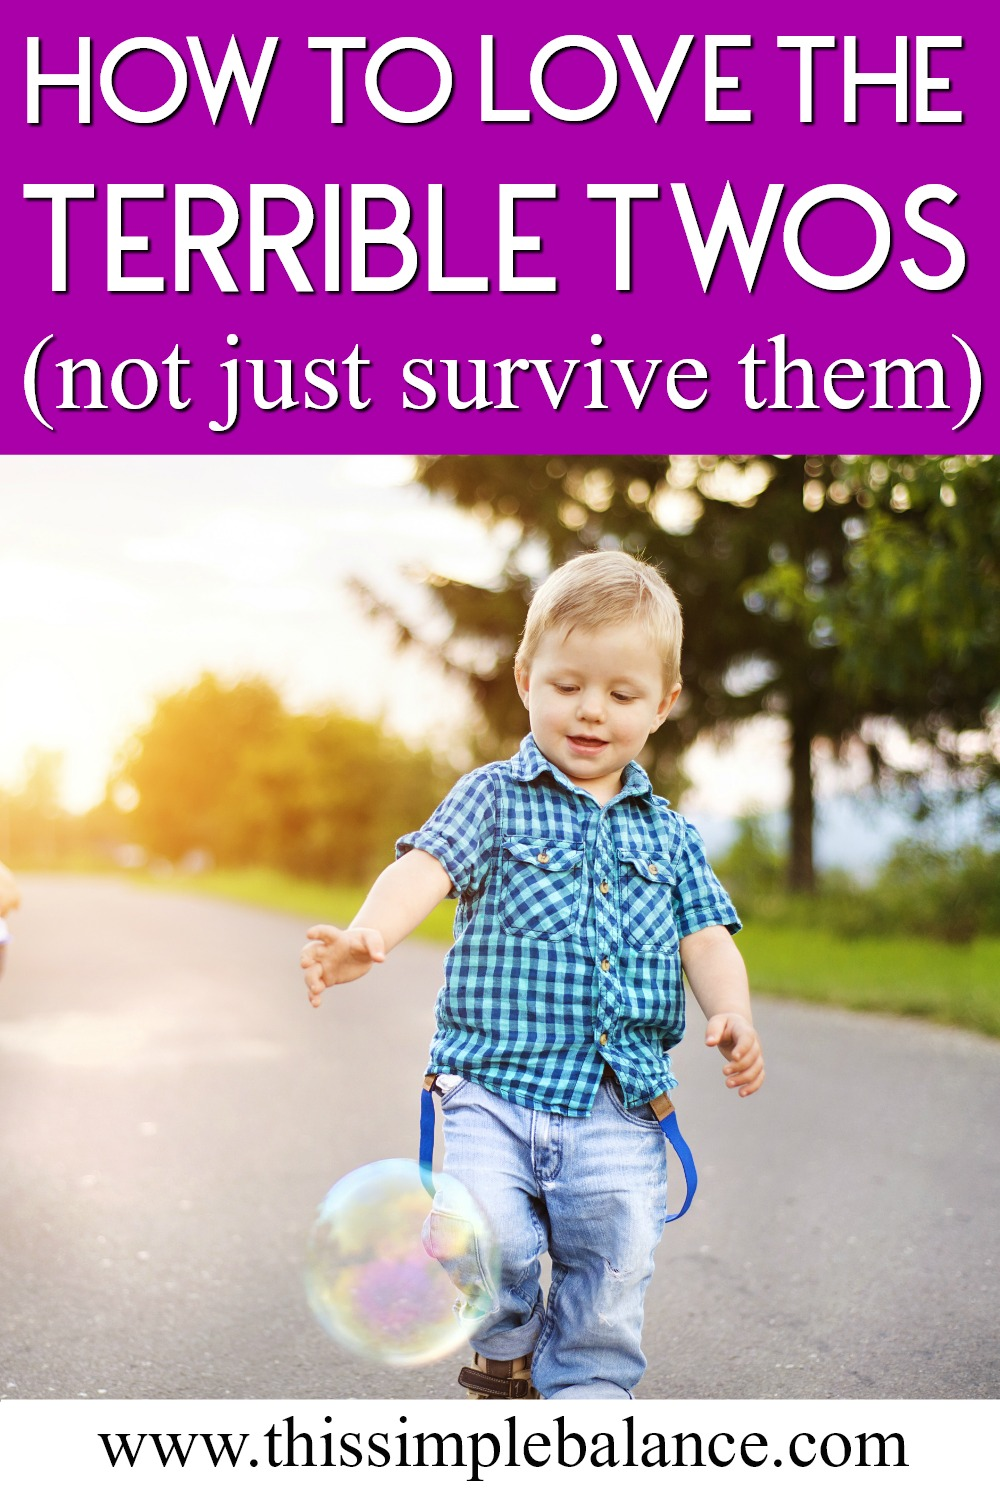 The Terrible Twos: Get practical tips for how you can LOVE this age and stage, not just survive it. #parentingtips